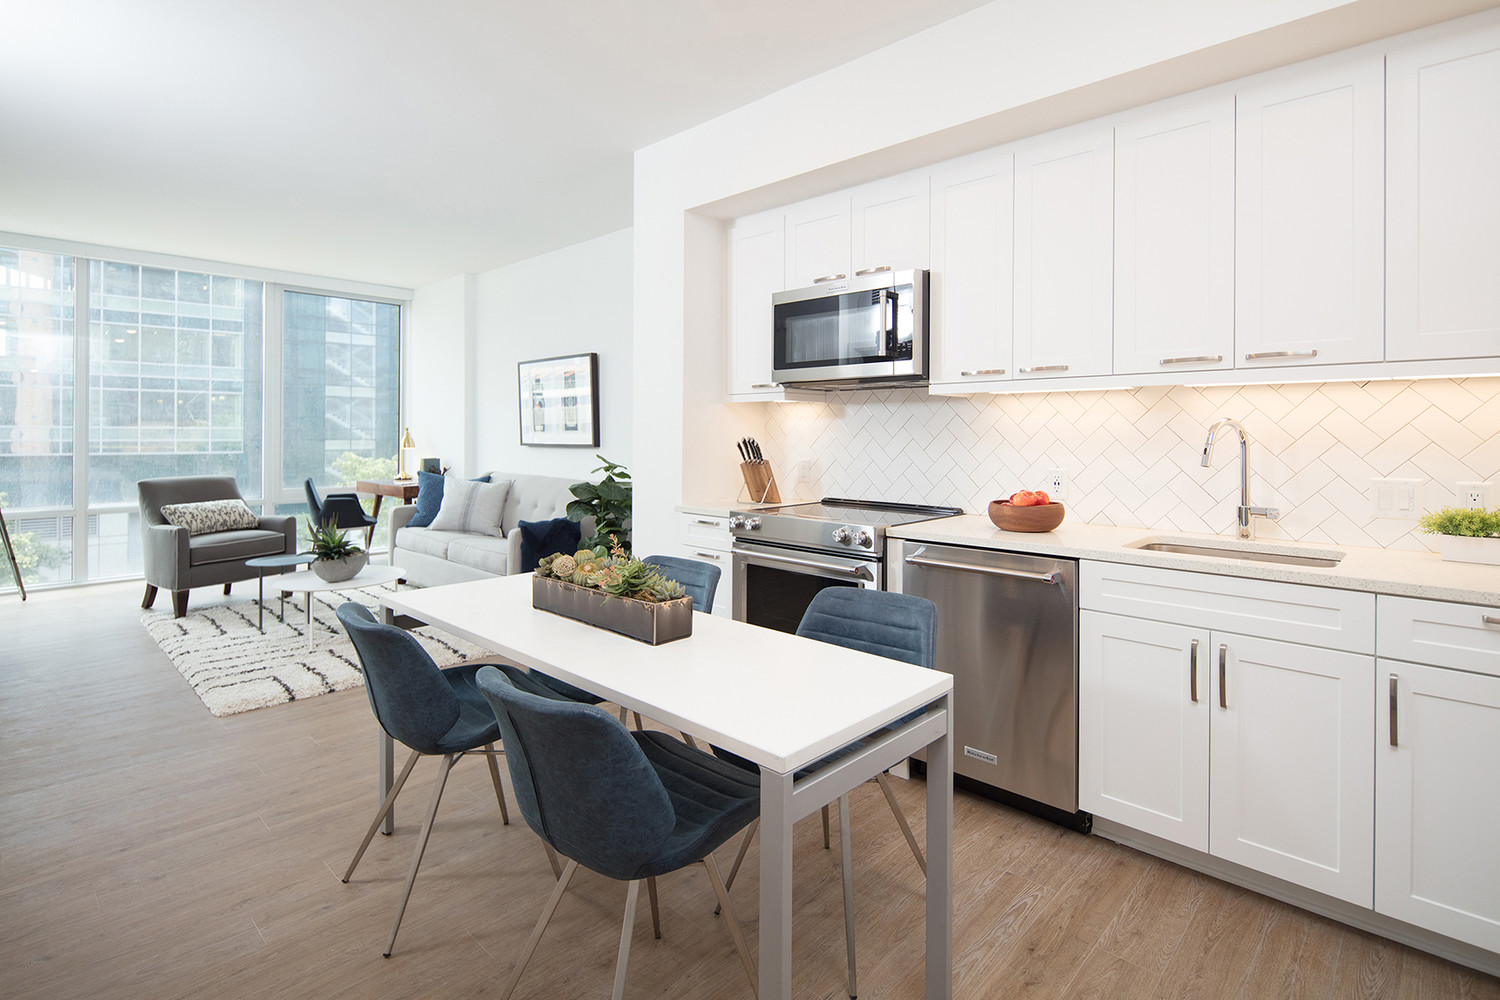 2br - Brand New, Luxury Furnished Apartments (2 Bed, 2 Bath) (Blocks from Union Station)